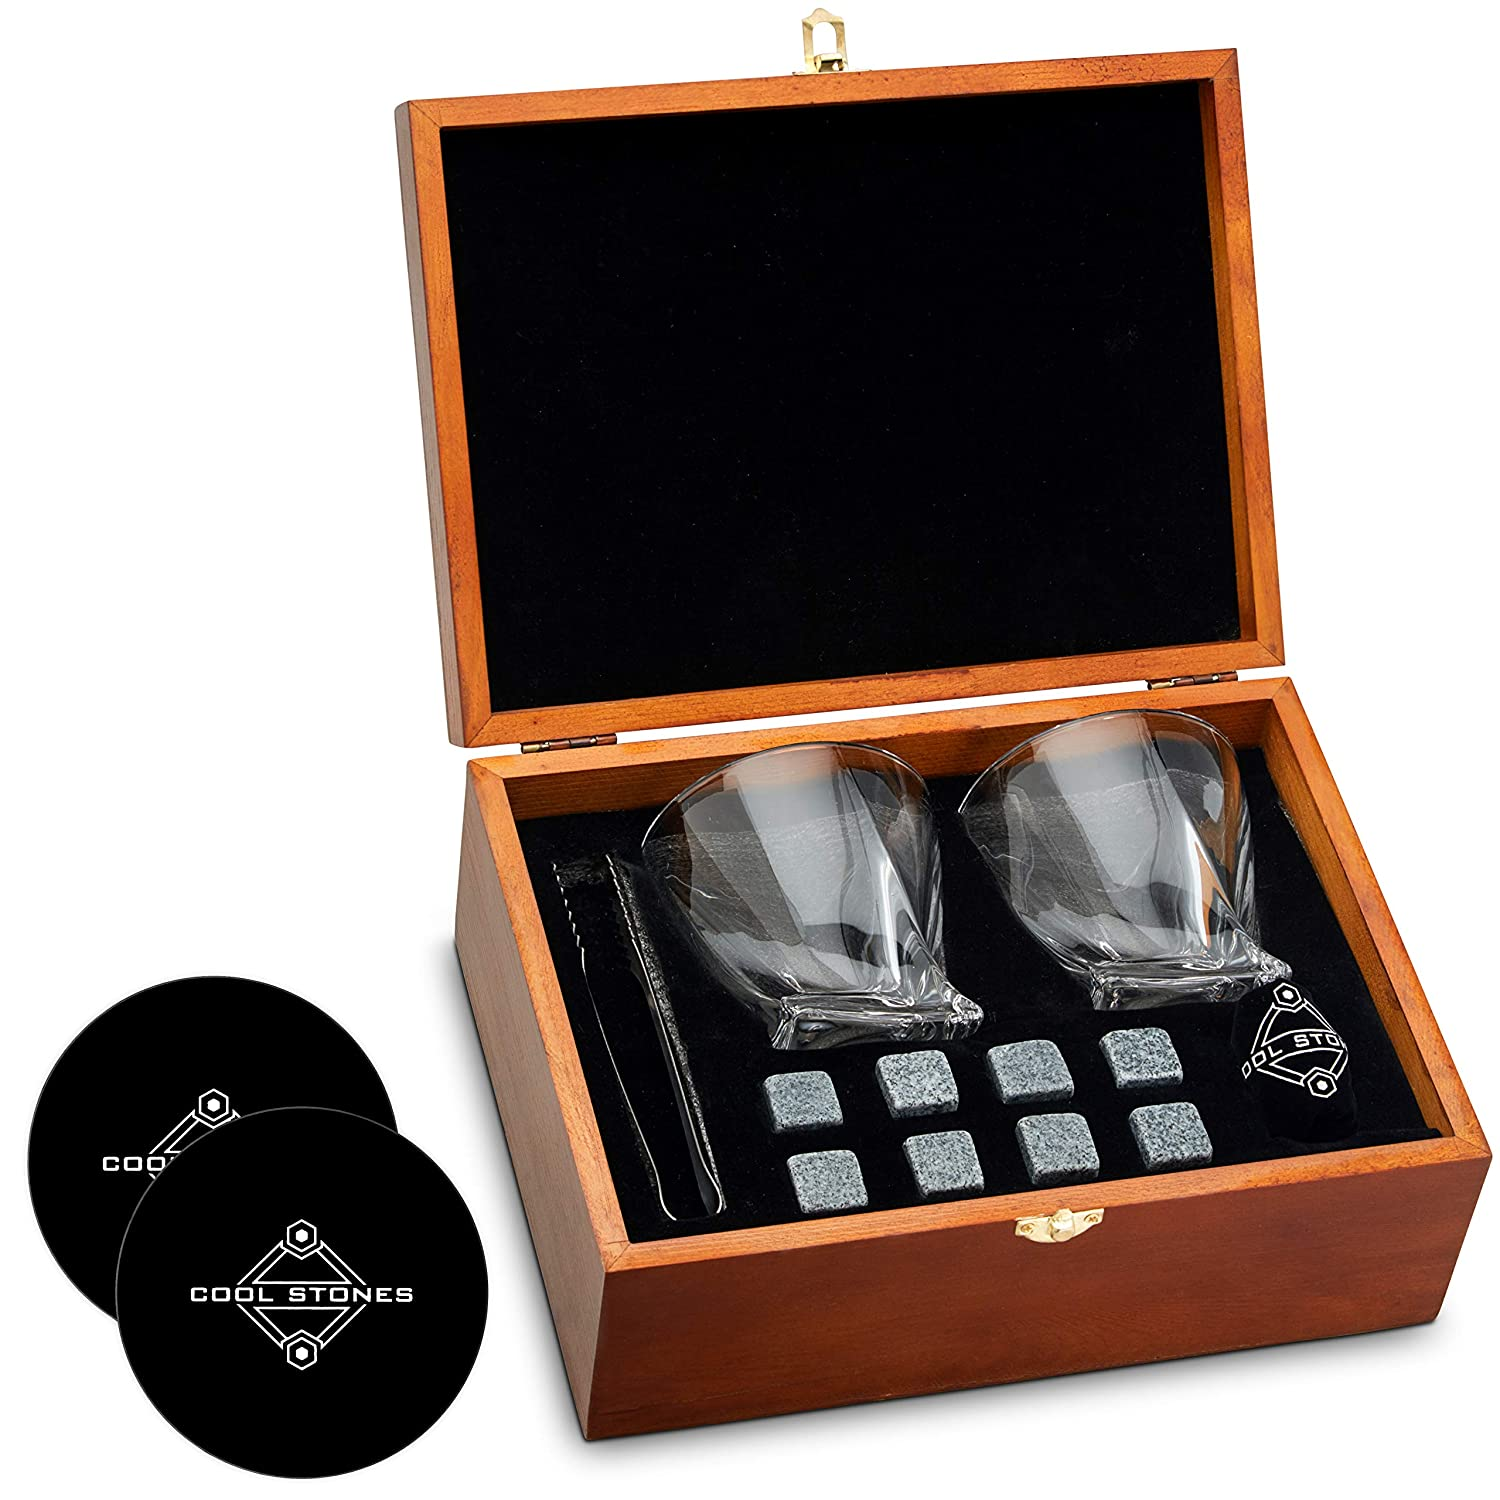 Whiskey Stones and Whiskey Glass Gift Boxed Set - 8 Granite Chilling Whisky Rocks + 2 Crystal Glasses in Wooden Box + Silicone Coasters - Great Gift for Father's Day, Dad's Birthday or Anytime For Dad